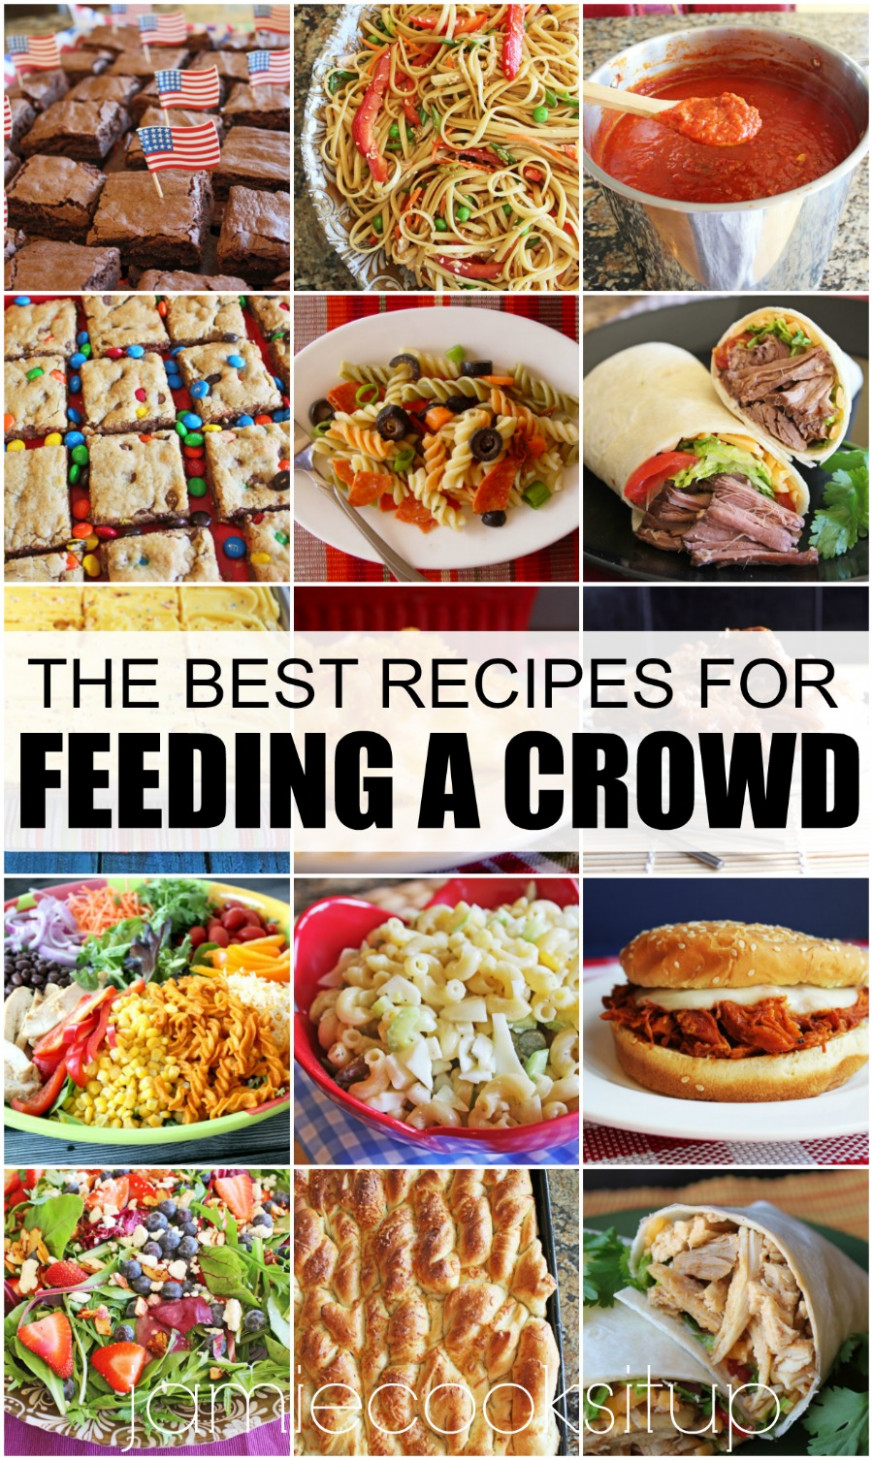 The Best Recipes For Feeding A Crowd (Girls Camp, Family ..